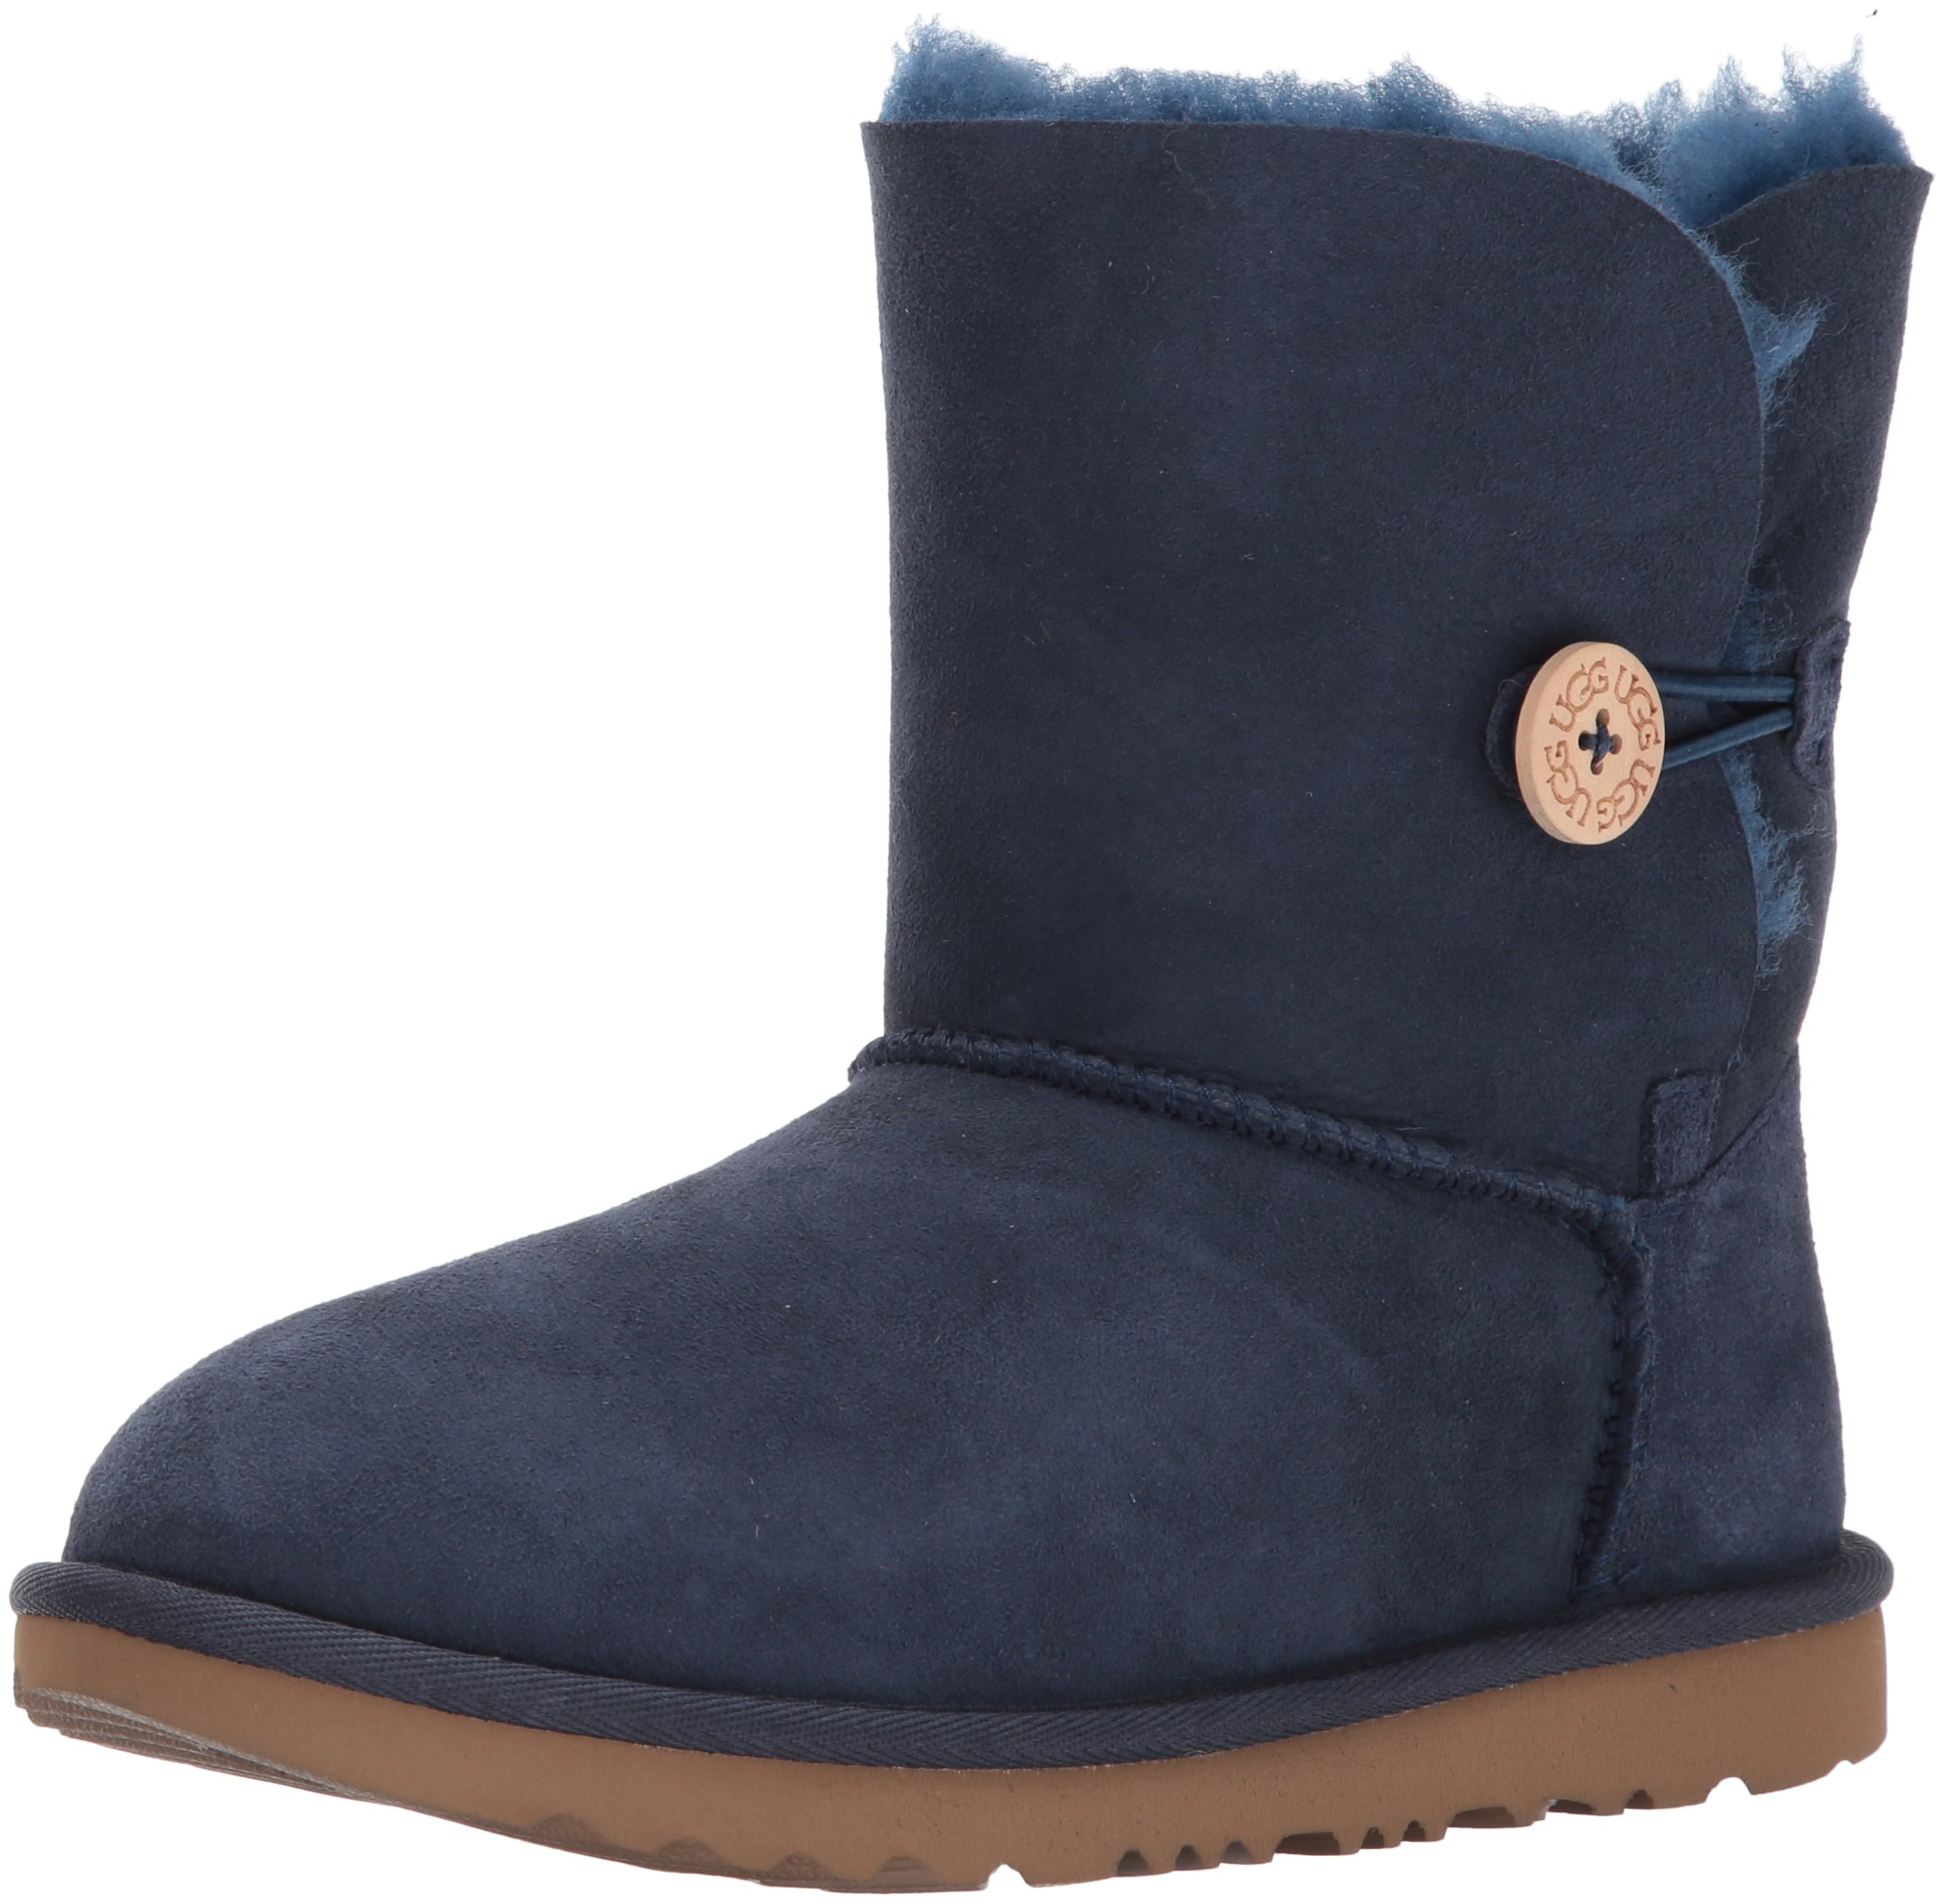 UGG Girls K Bailey Button II Pull-On Boot, Navy, 5 M US Big Kid by UGG (Image #1)